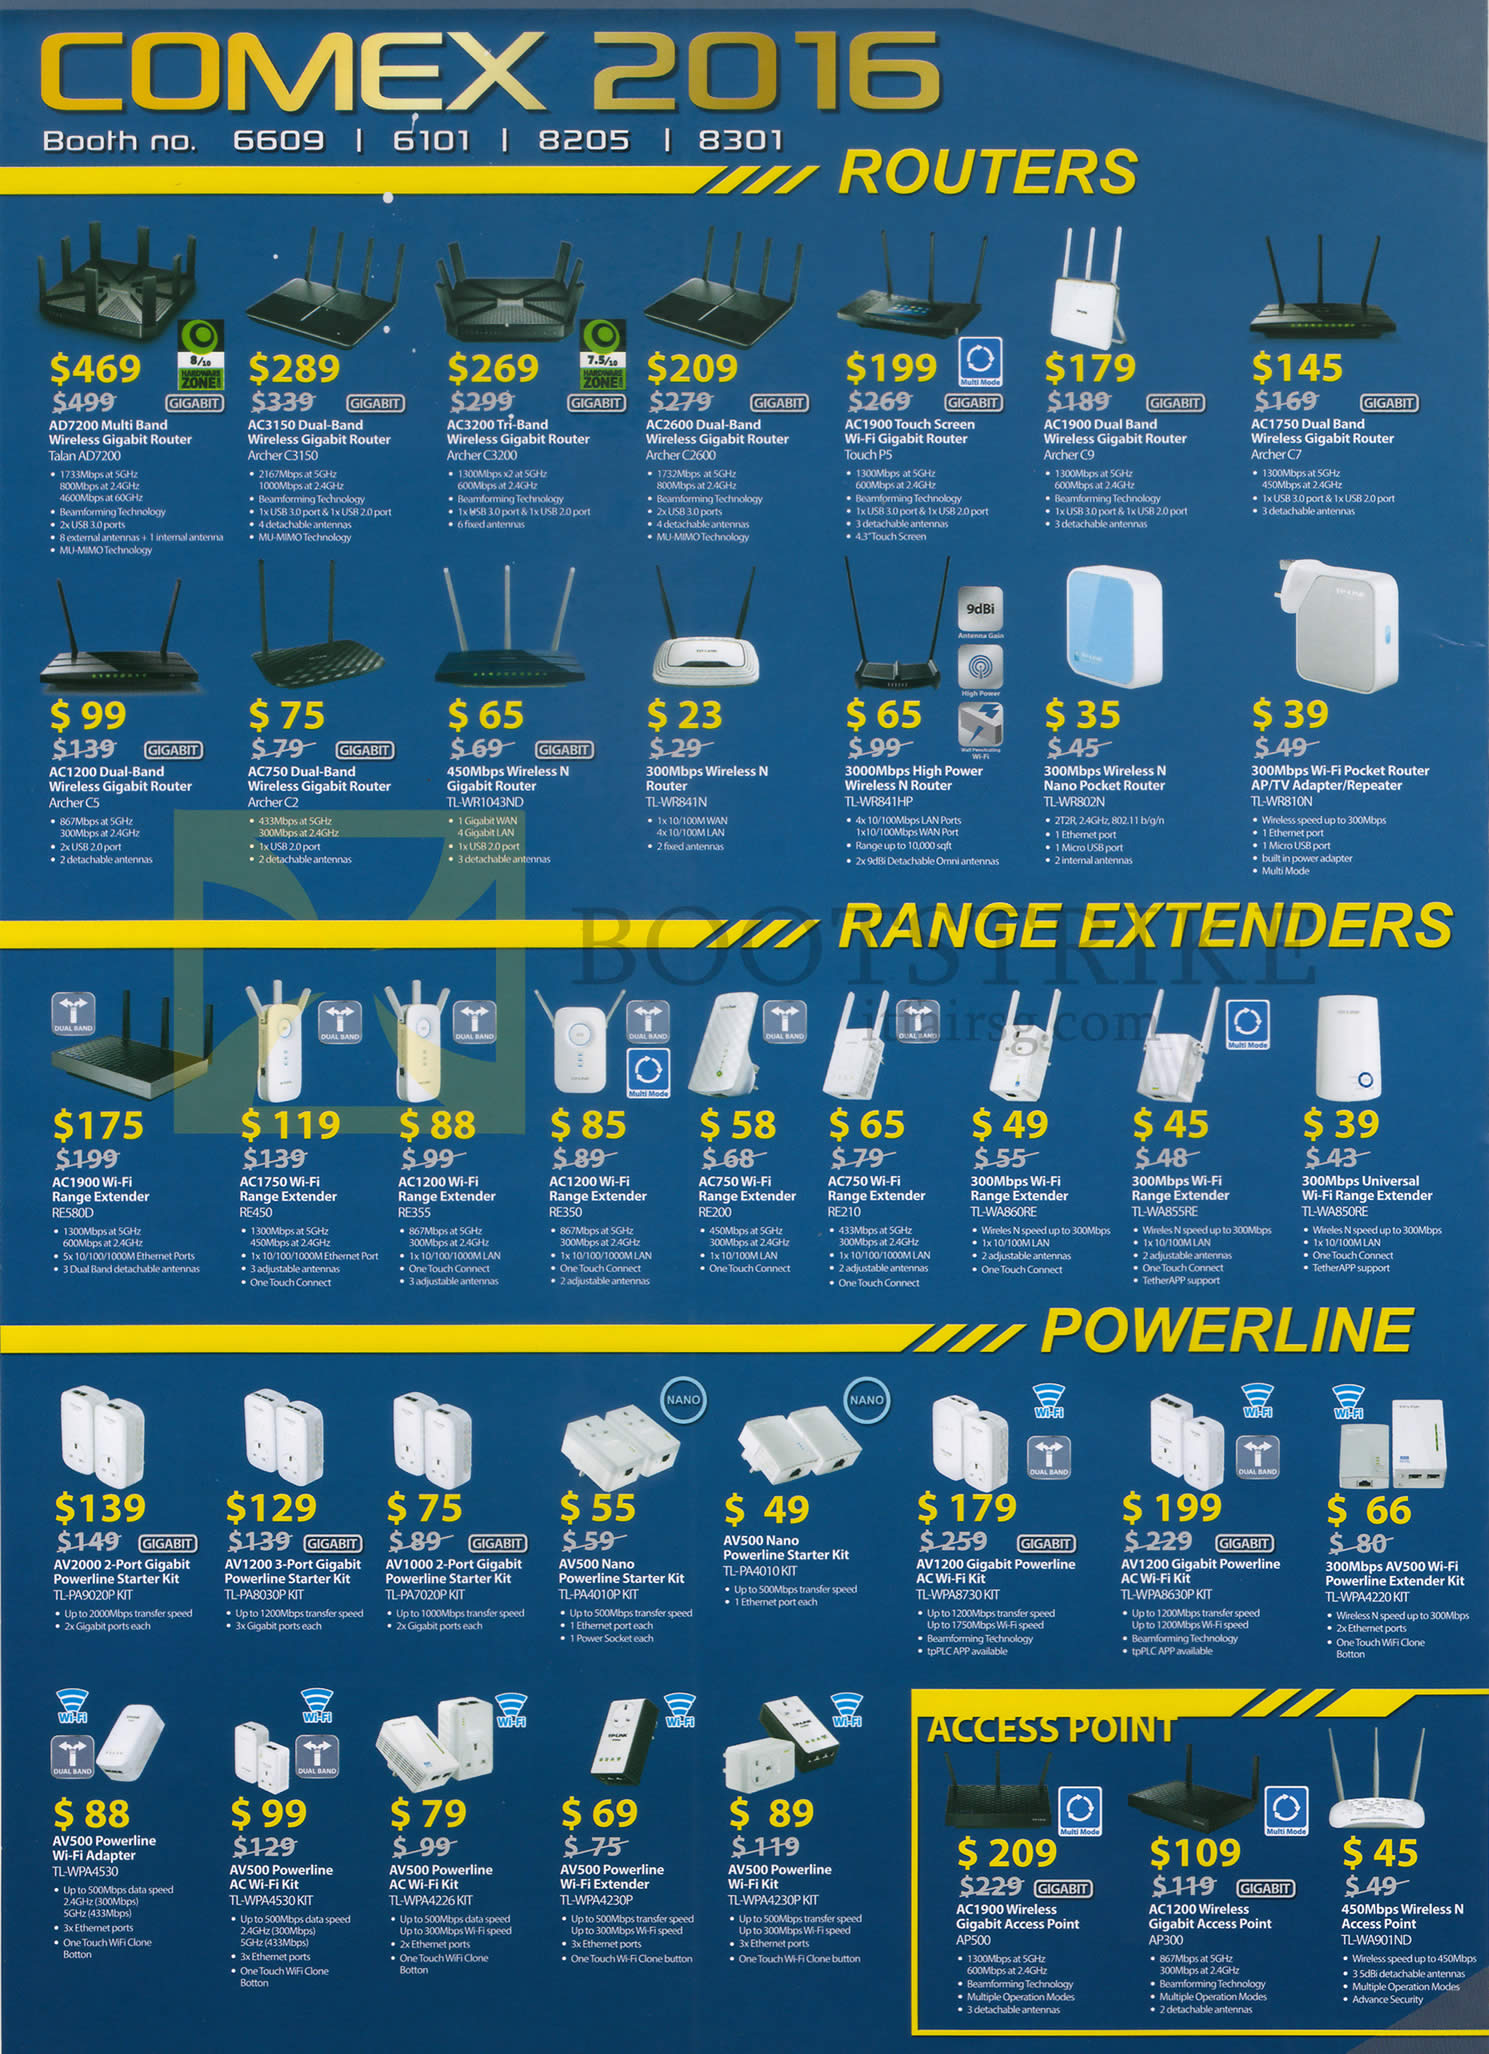 COMEX 2016 price list image brochure of TP-Link Networking Wireless Routers, Range Extenders, Powerline, Access Points